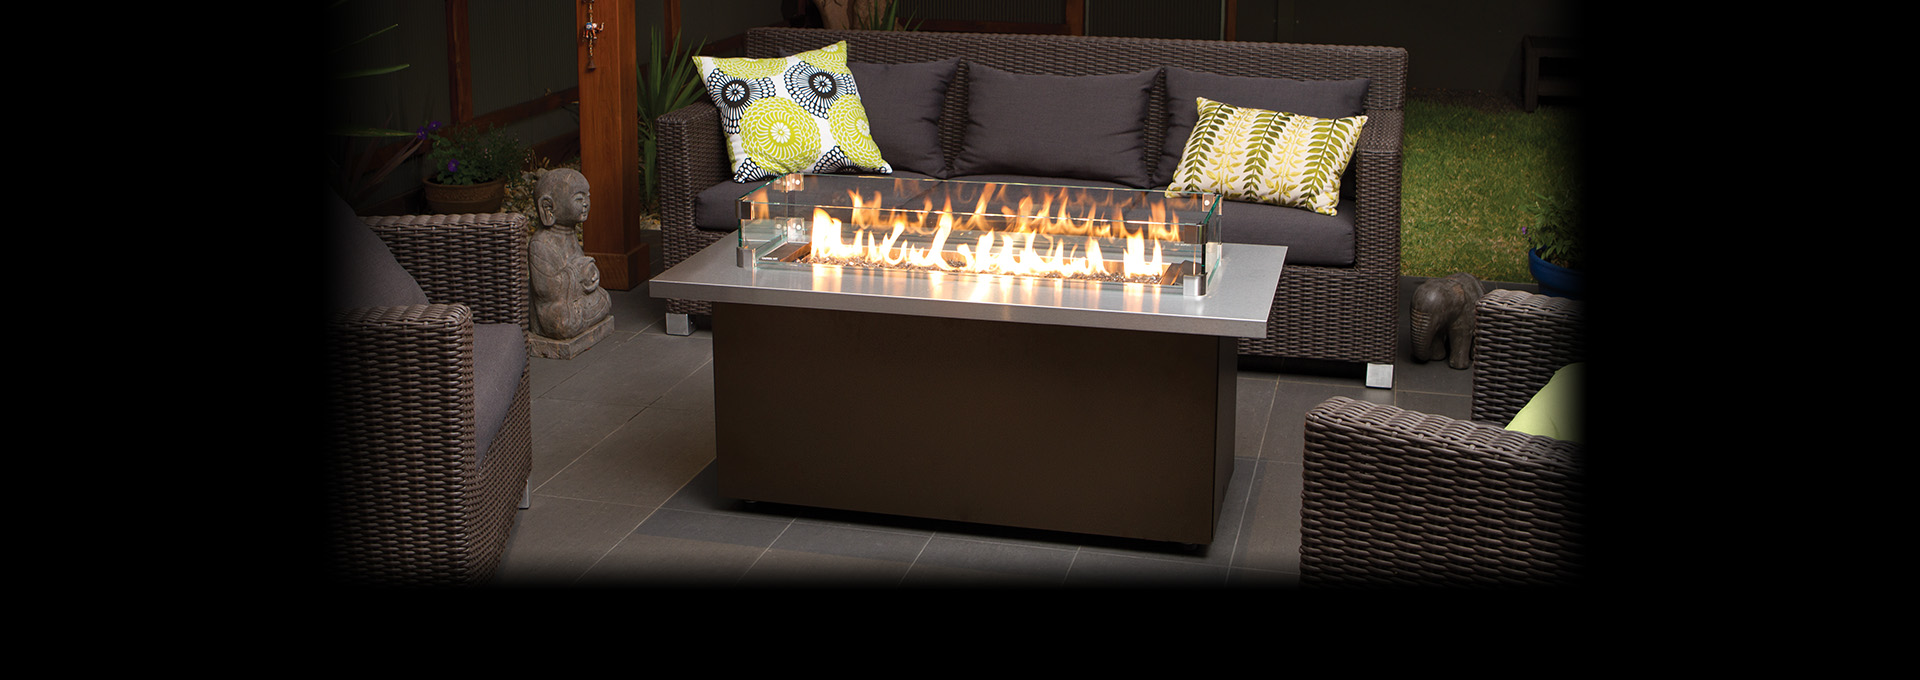 Marvelous Regency Plateau Outdoor Firetable Shown With A Stainless Steel Table Top  And Glass Windshield Surround